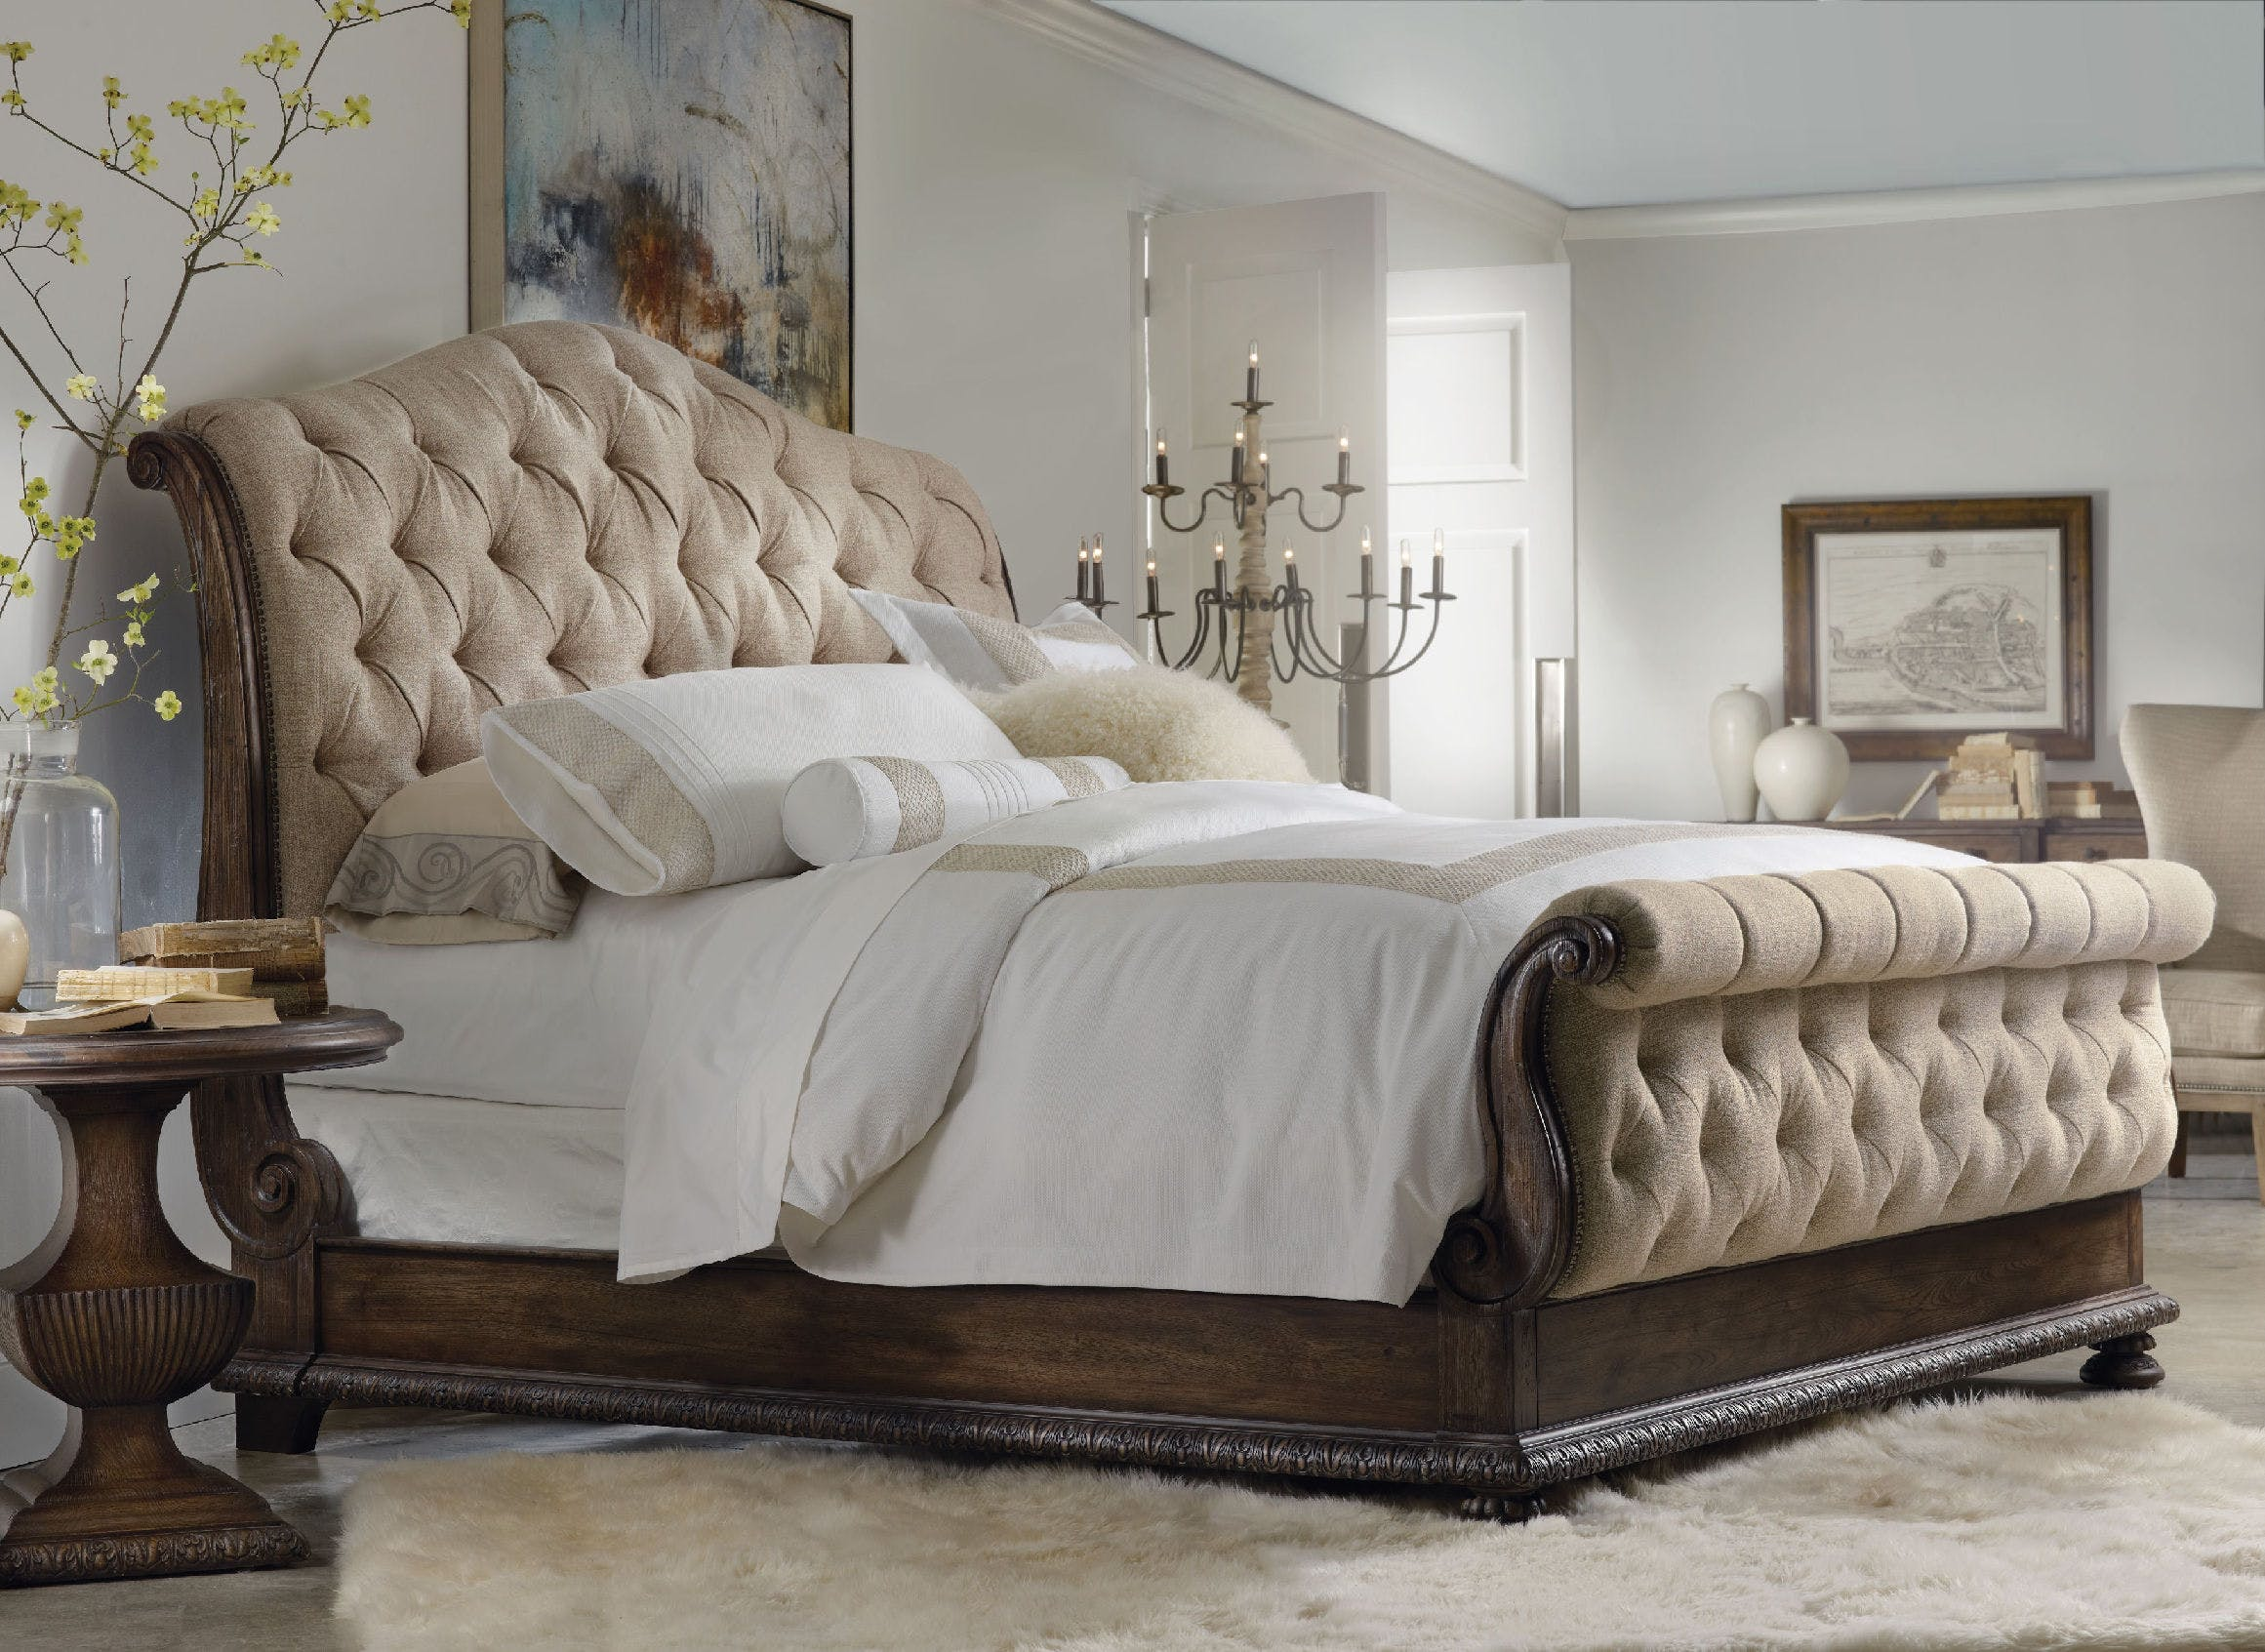 Hooker Furniture Bedroom Rhapsody California King Tufted Bed 5070-90560